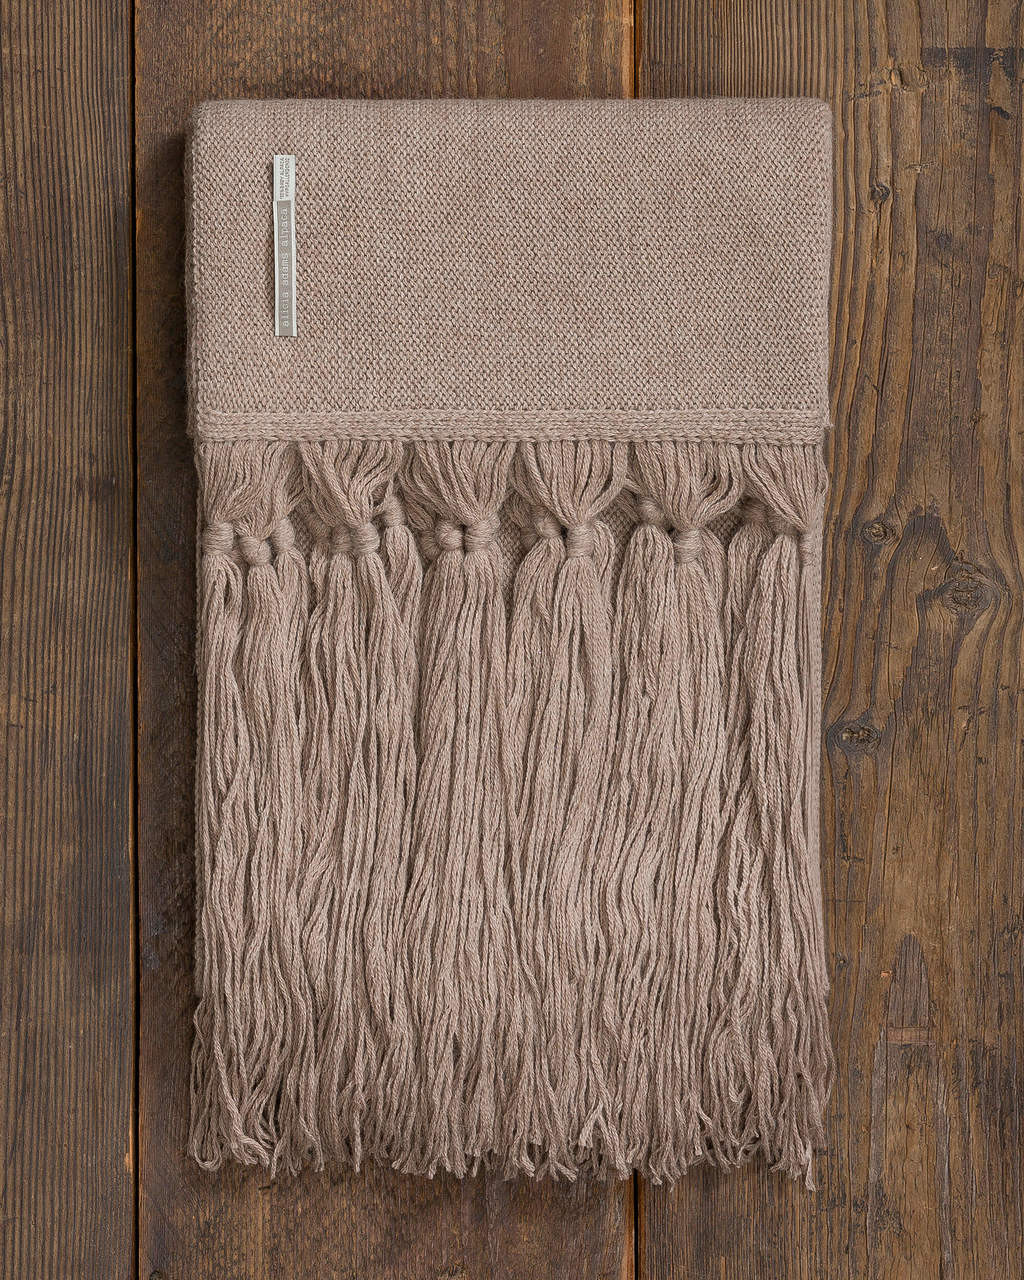 Alicia Adams Alpaca Cayman Throw, open weave alpaca throw blanket with tassels, alpaca throw, alpaca vs cashmere, light taupe tan alpaca throw